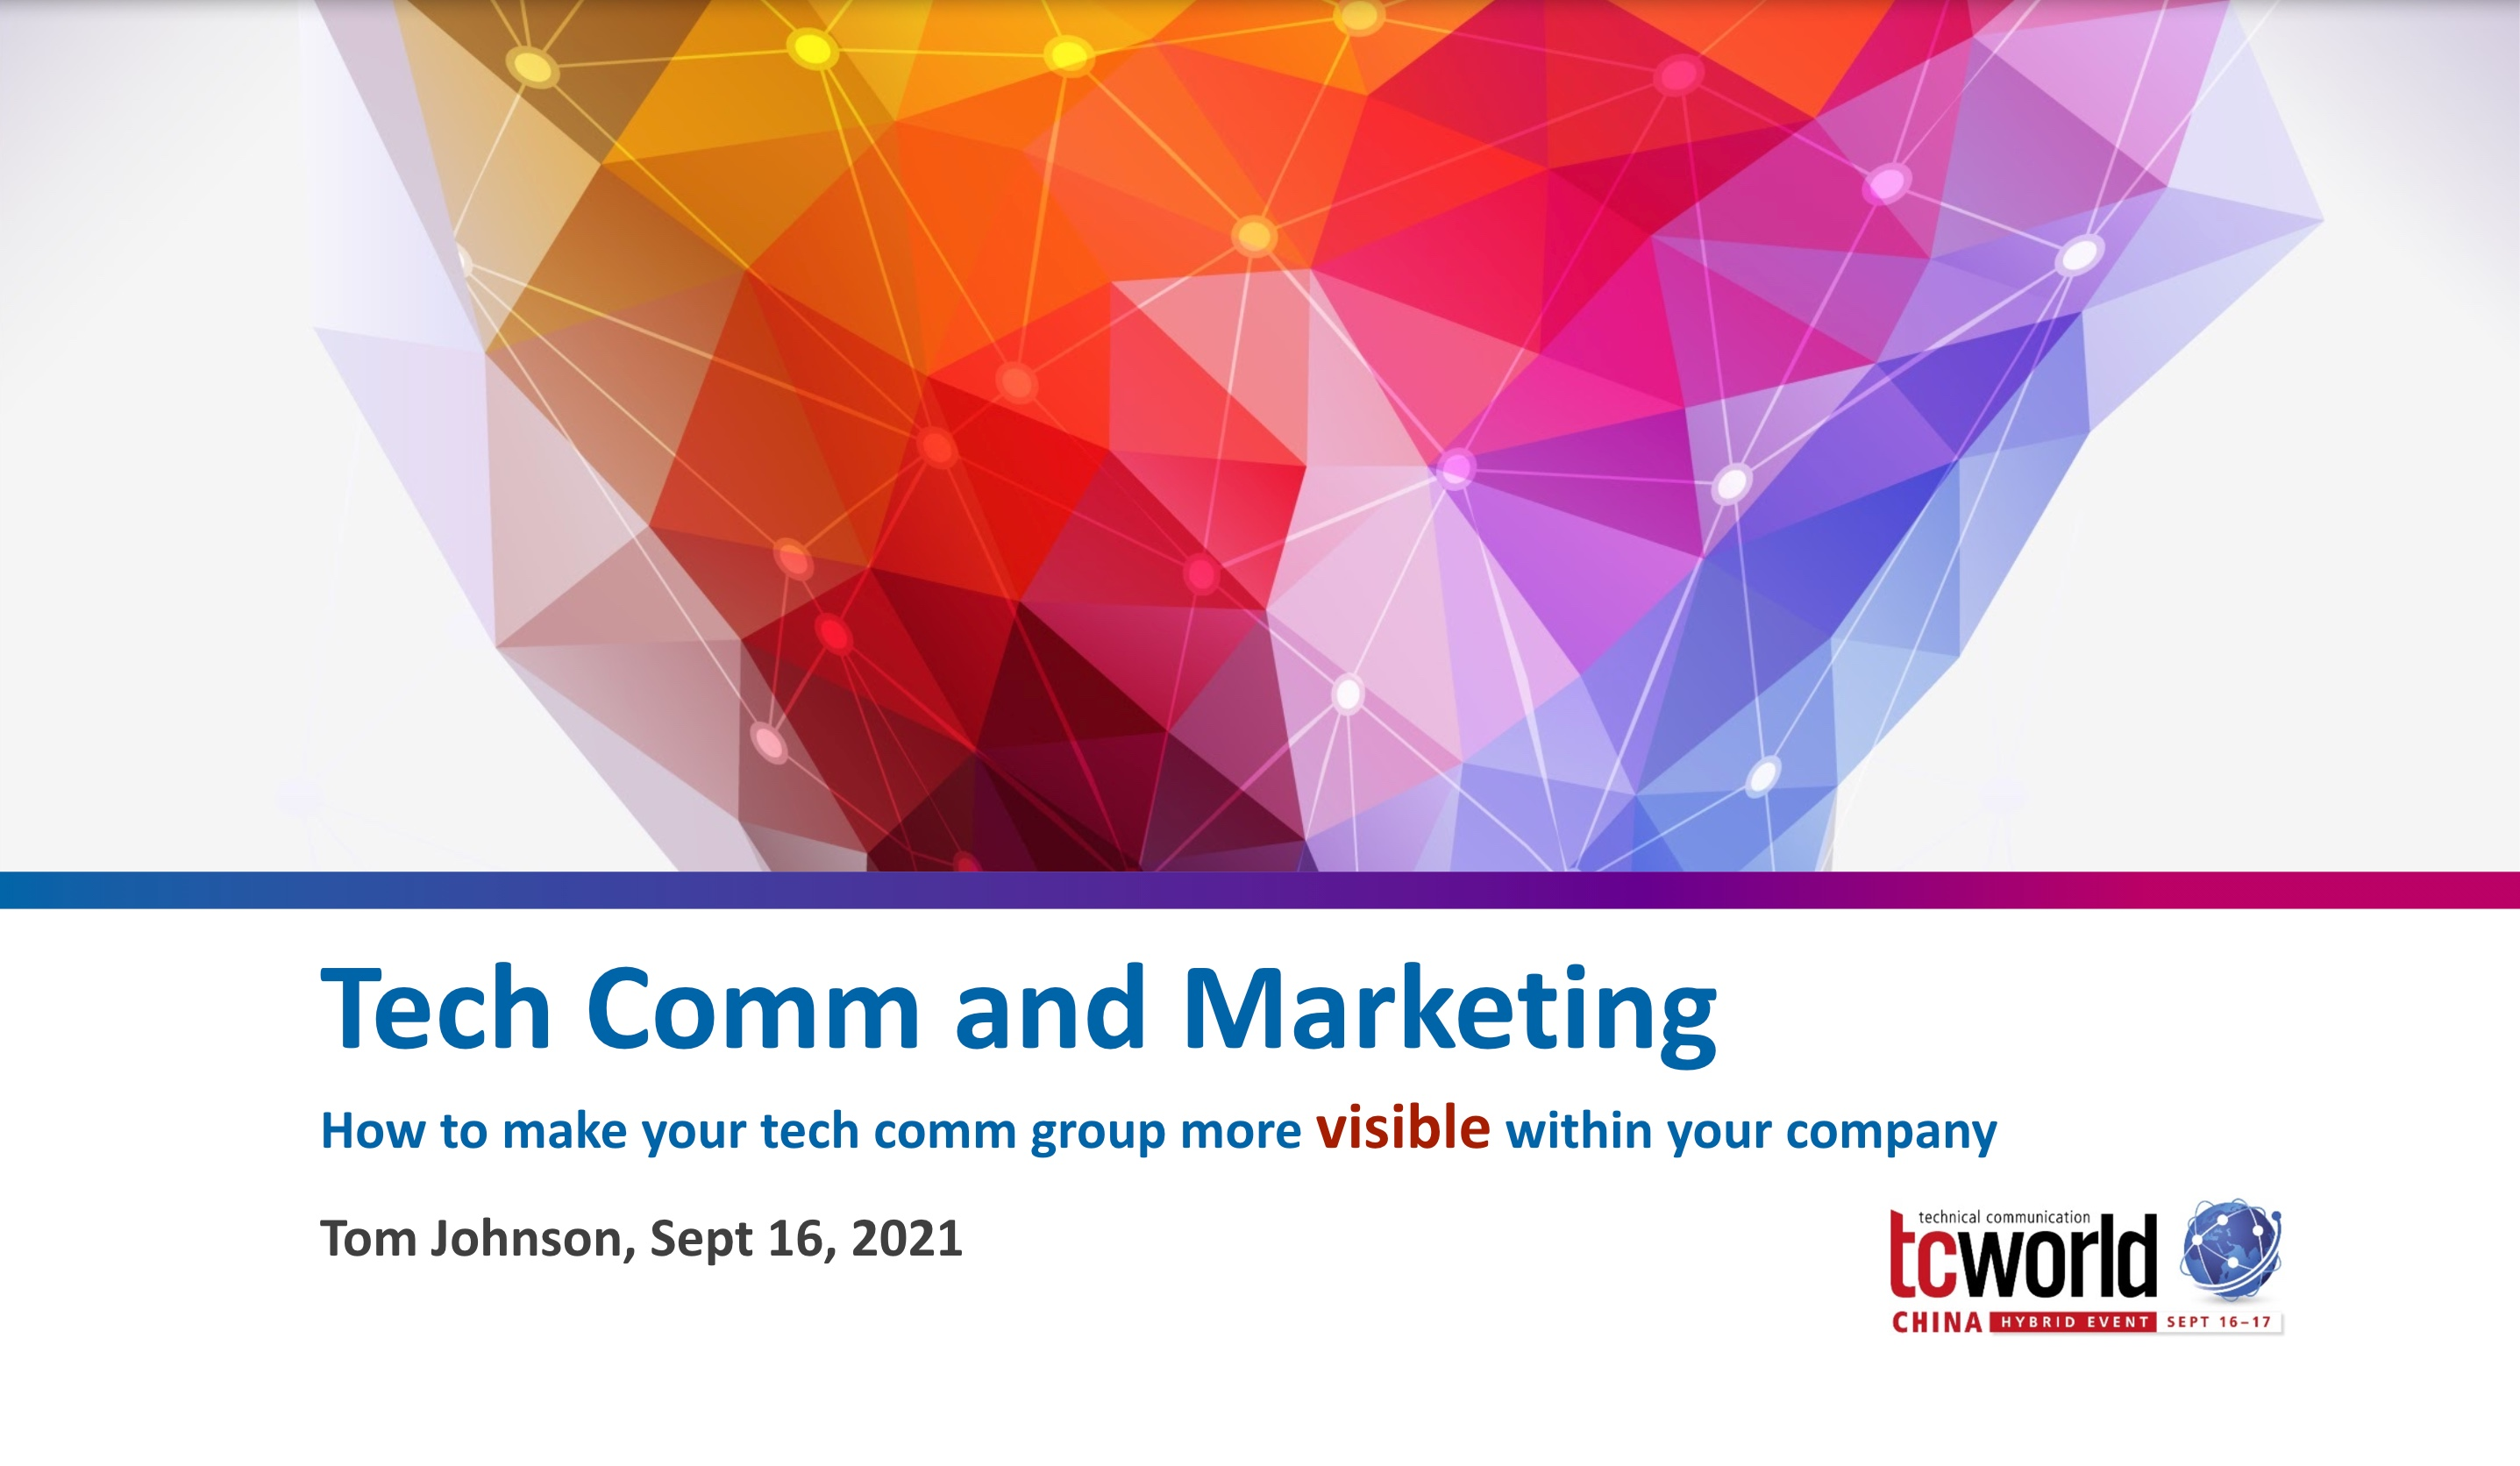 Tech comm and marketing: How to make your tech comm group more visible within your company